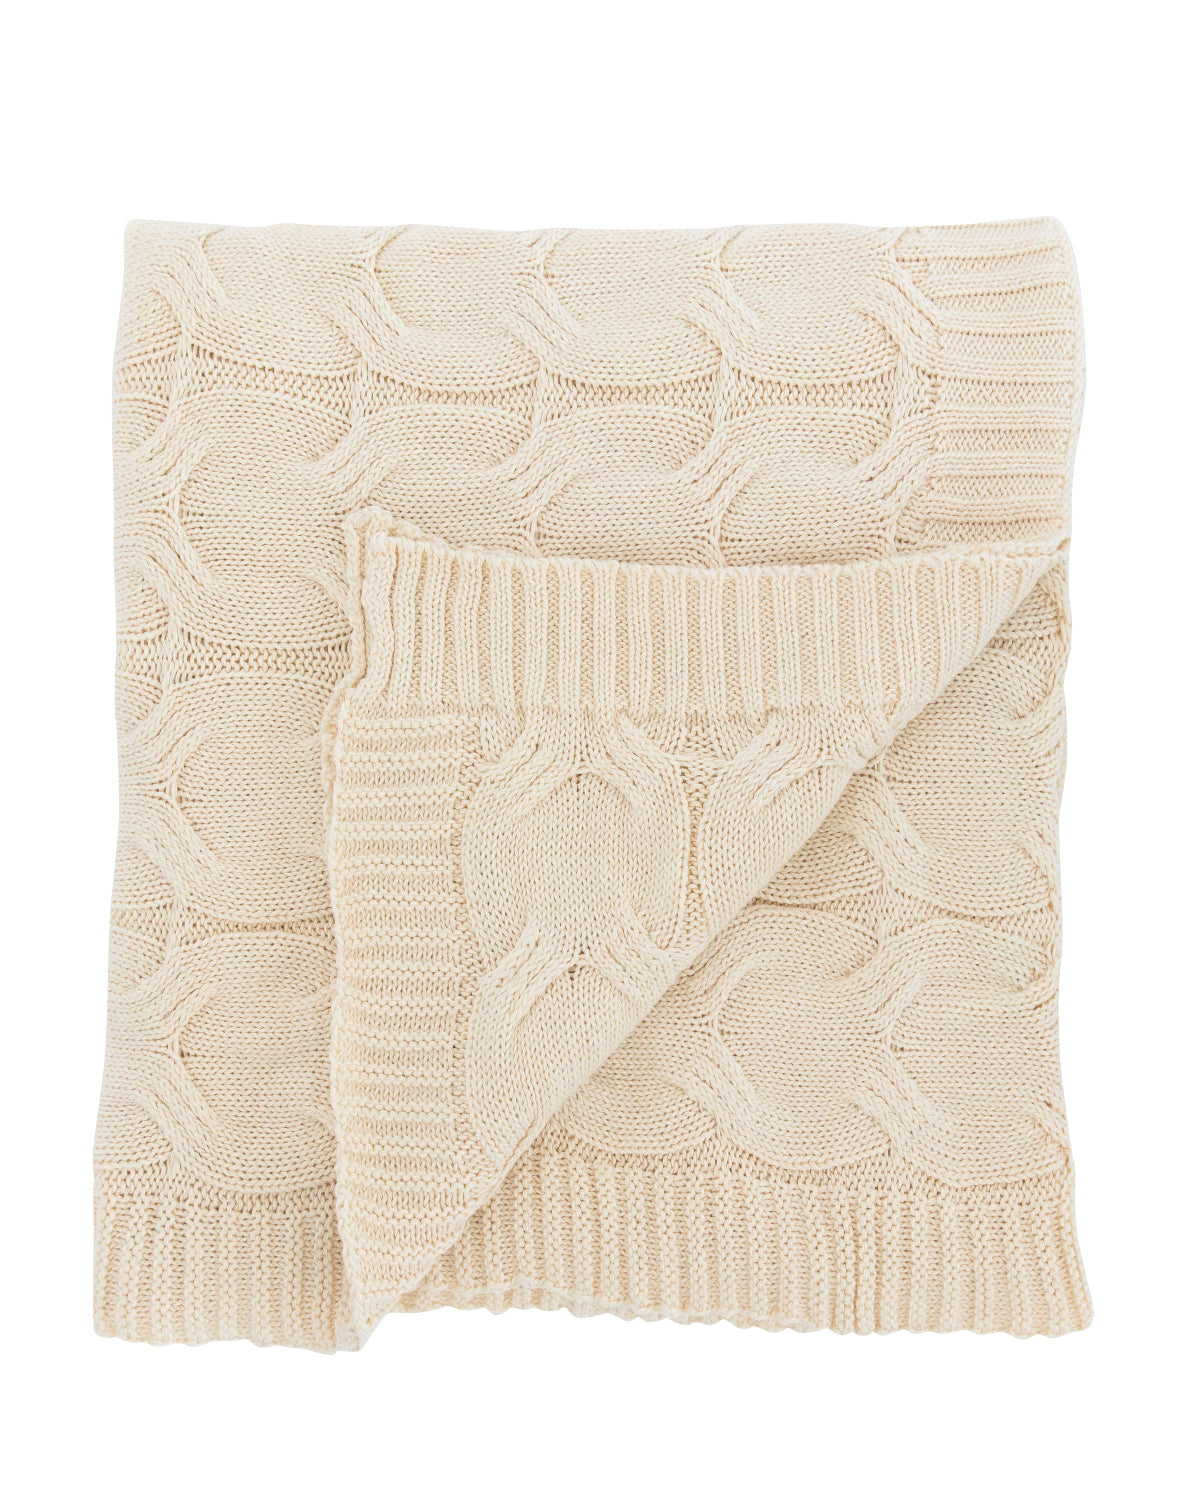 Ivory Cotton Knit Throw